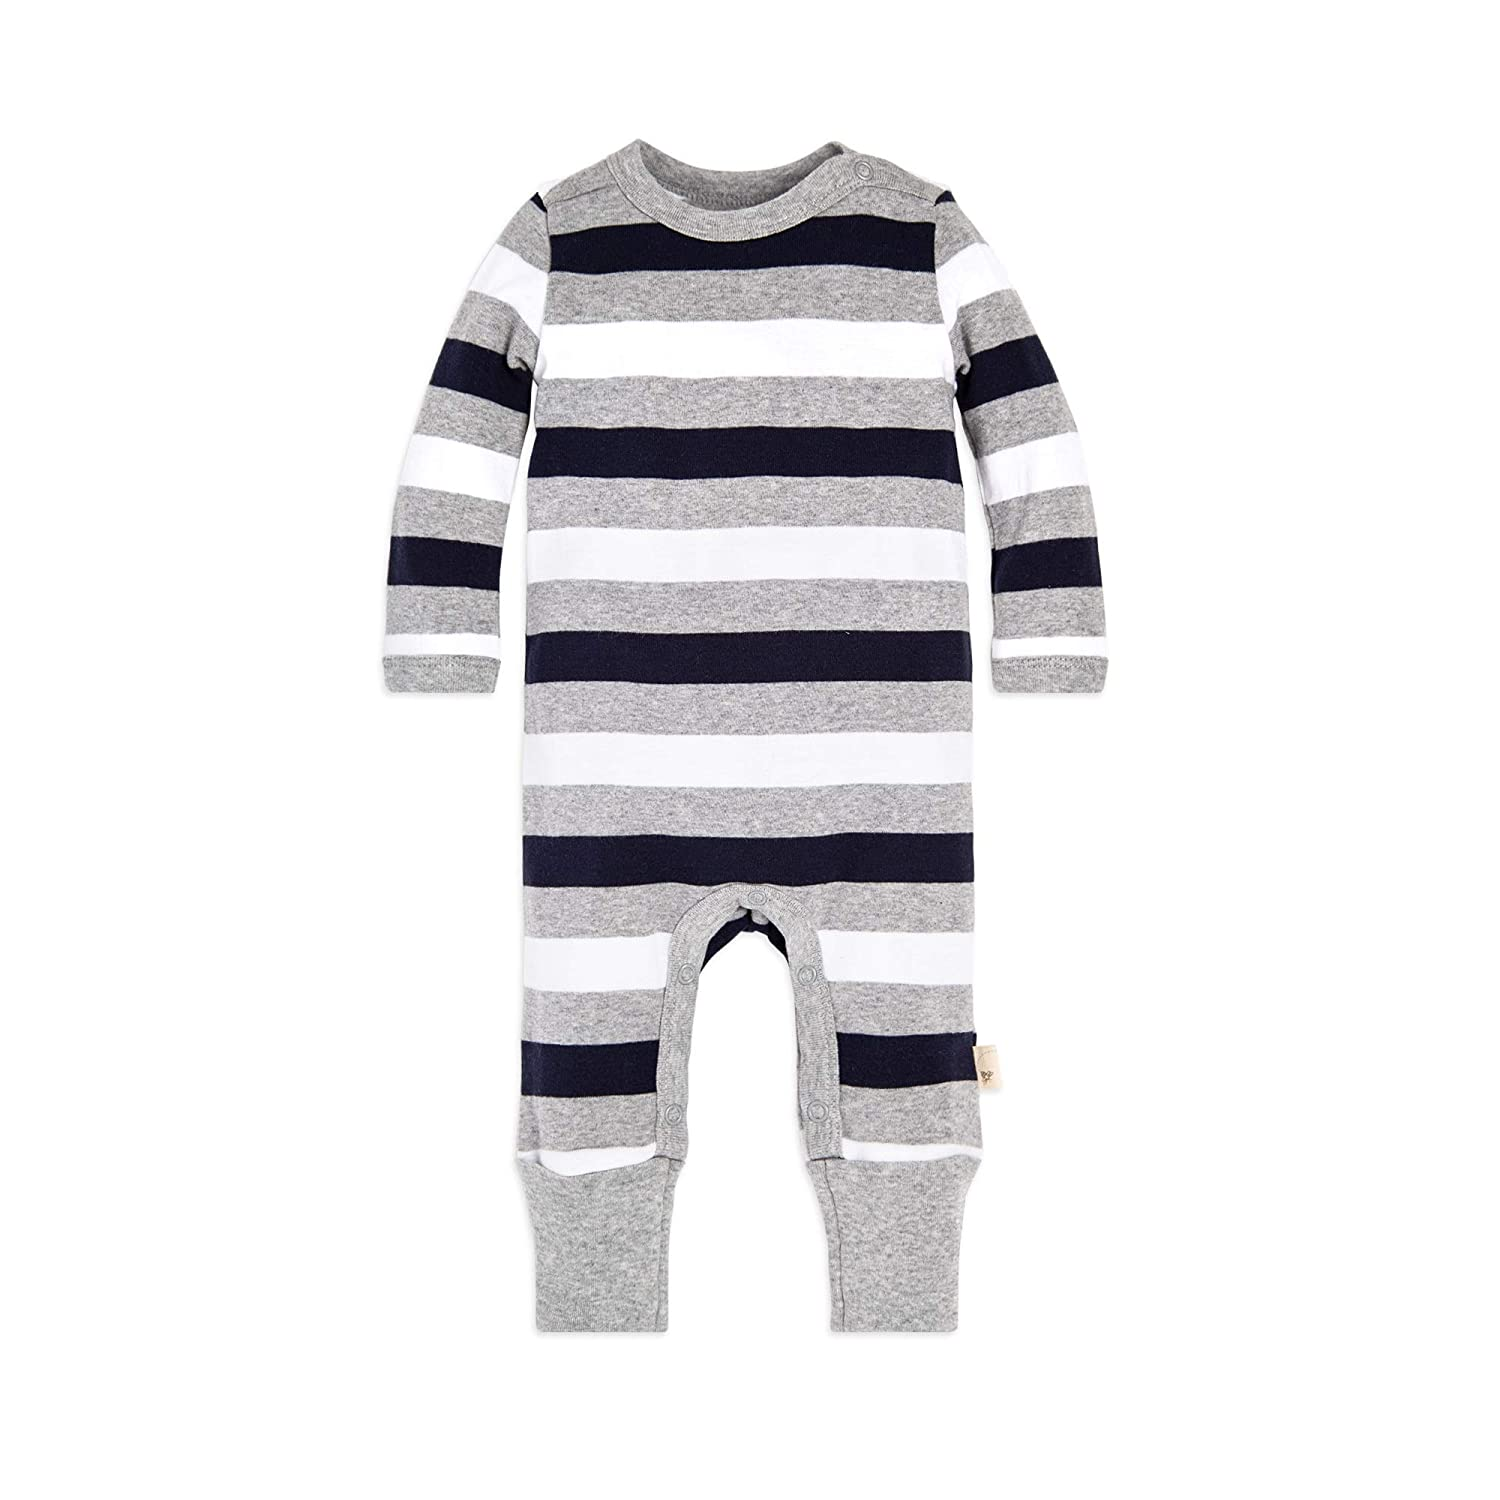 Burt's Bees Baby Baby Boys Romper Jumpsuit, 100% Organic Cotton One-Piece Coverall, Multi Rugby Stripe, 12 Months